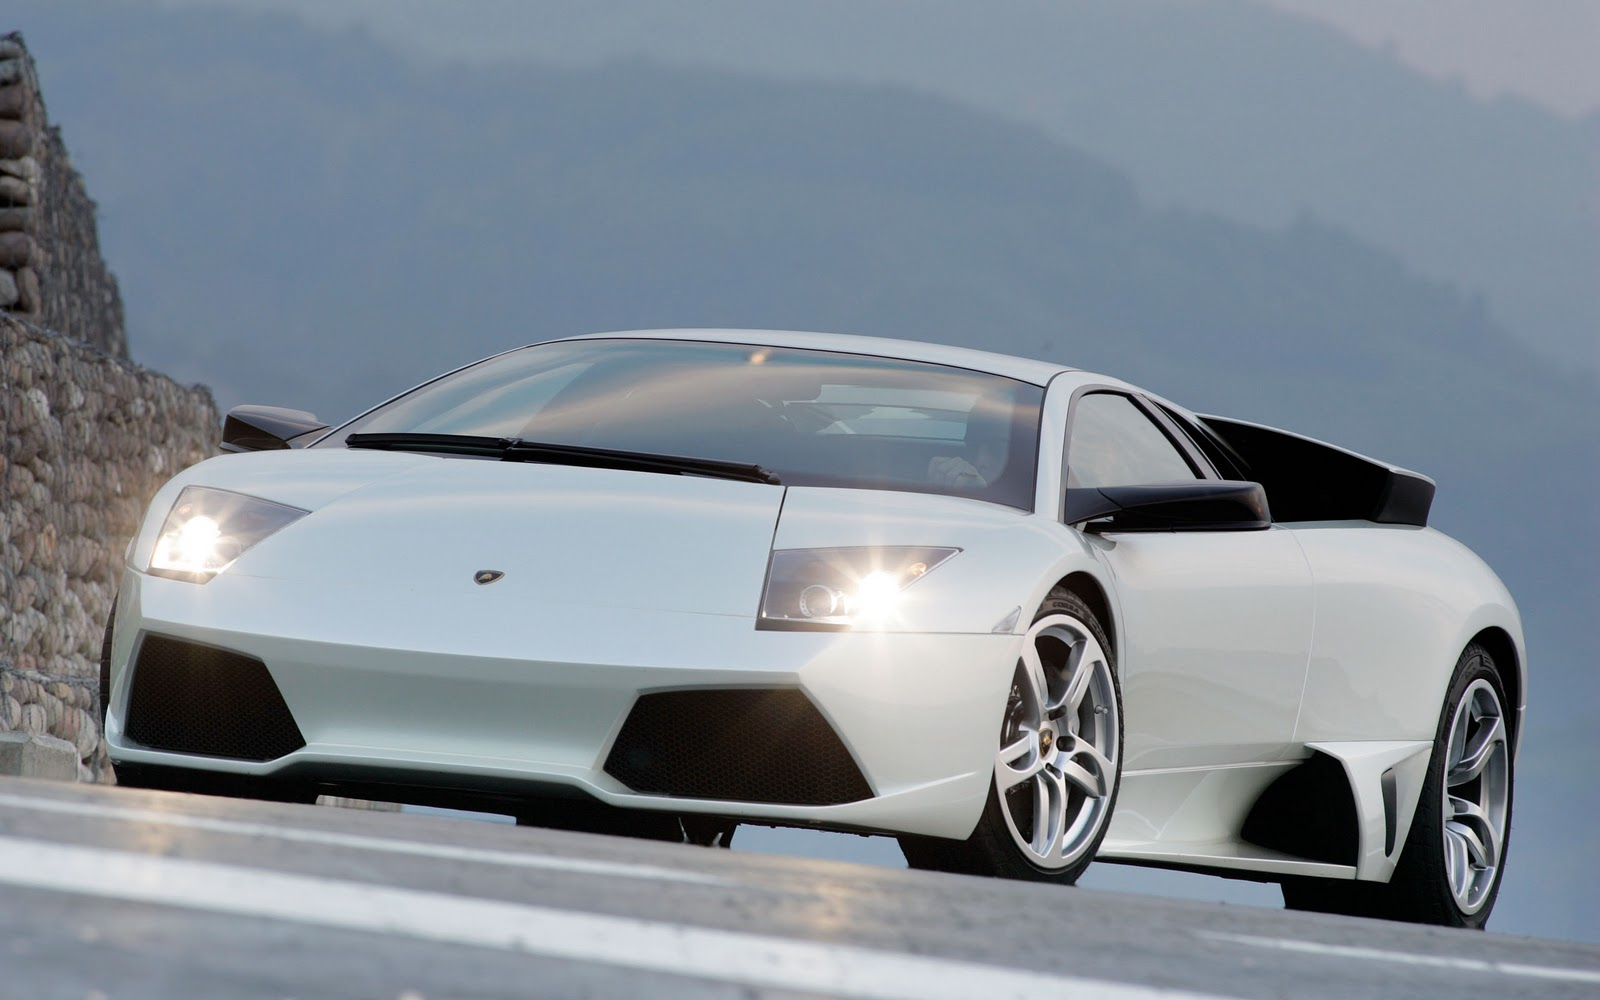 lamborghini murcielago wallpapers - photo #17